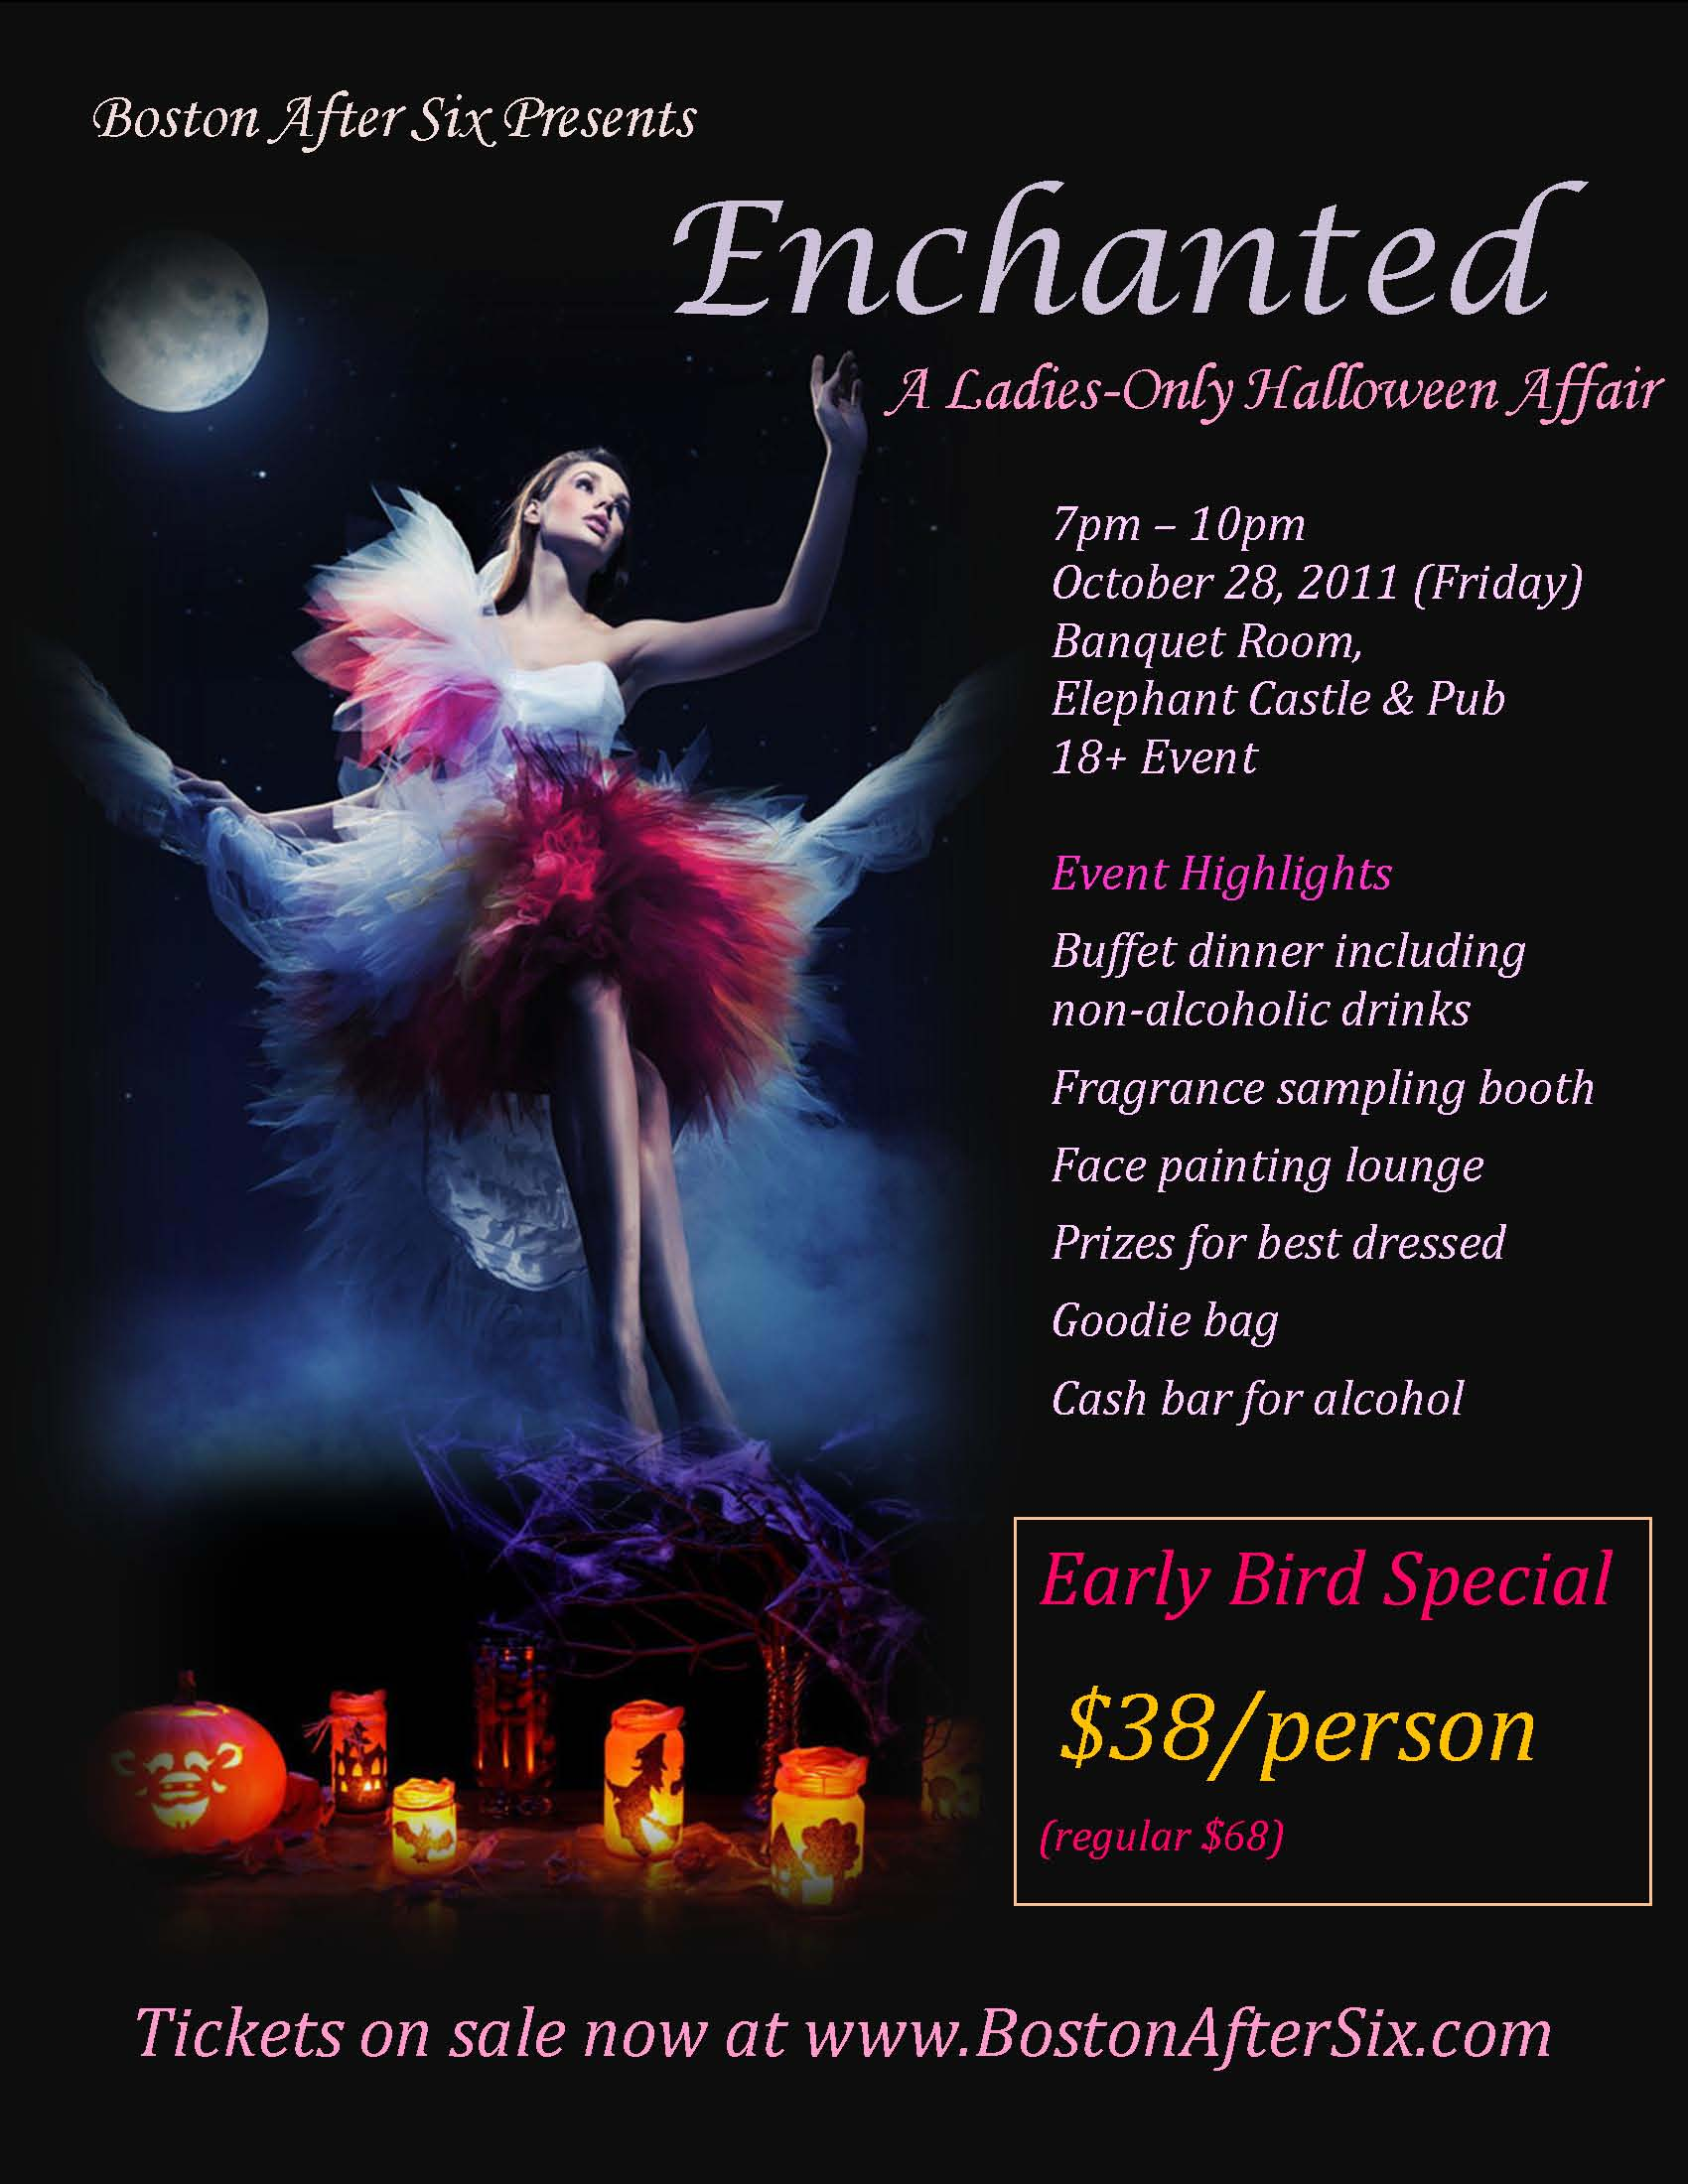 Enchanted - A Ladies-Only Halloween Affair